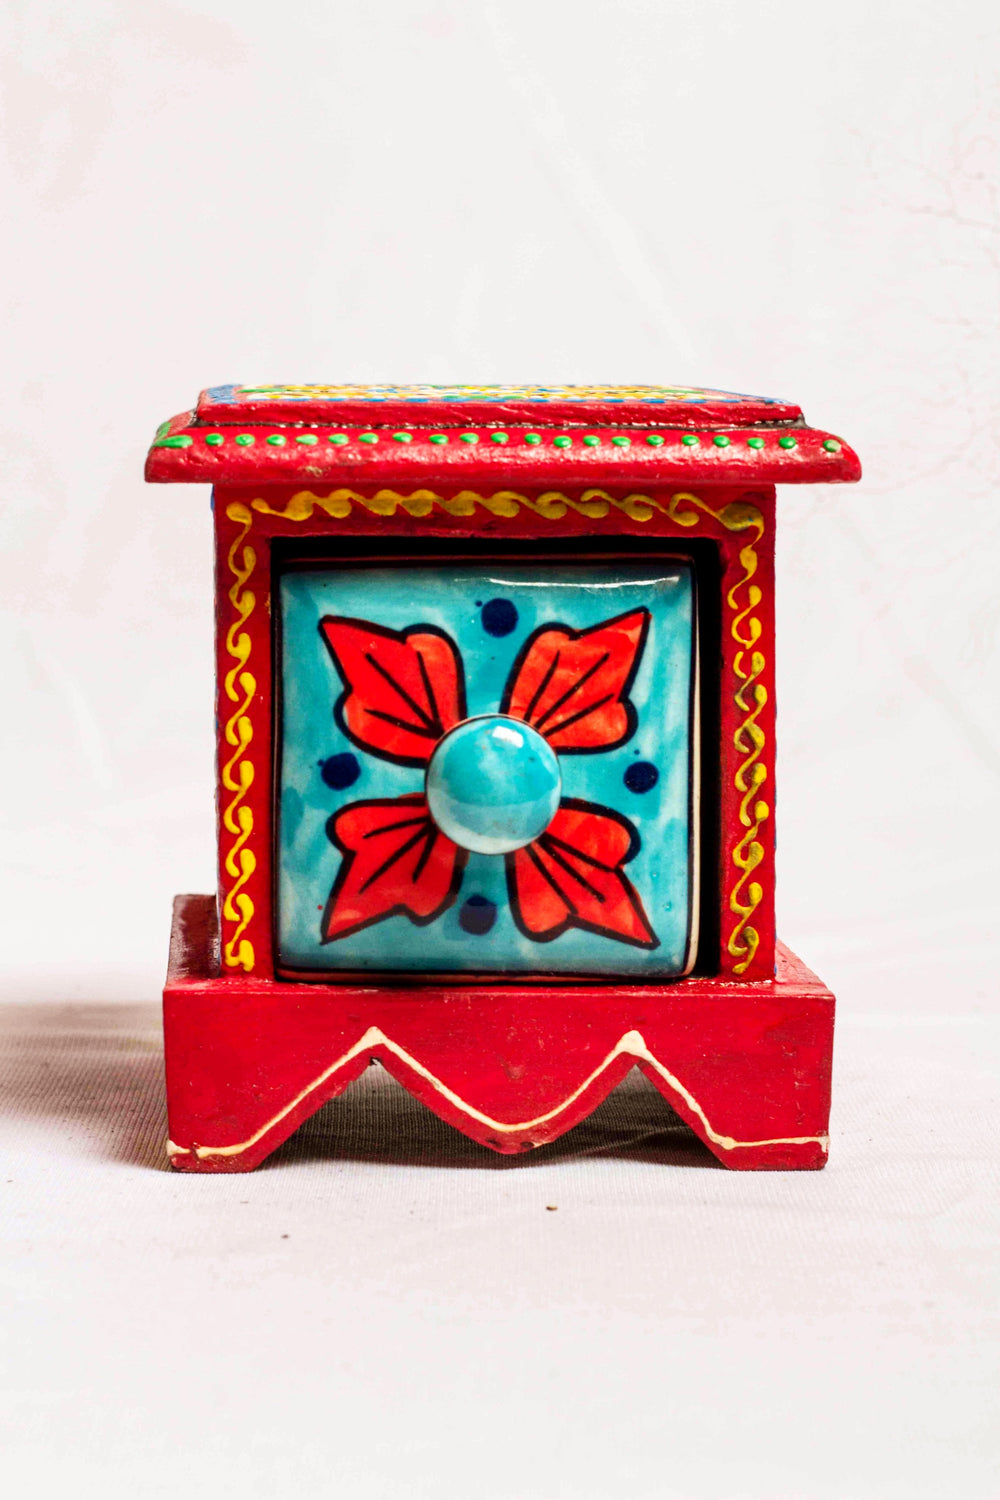 Single drawer in a red framed wooden box with painted motifs, with a ceramic drawer